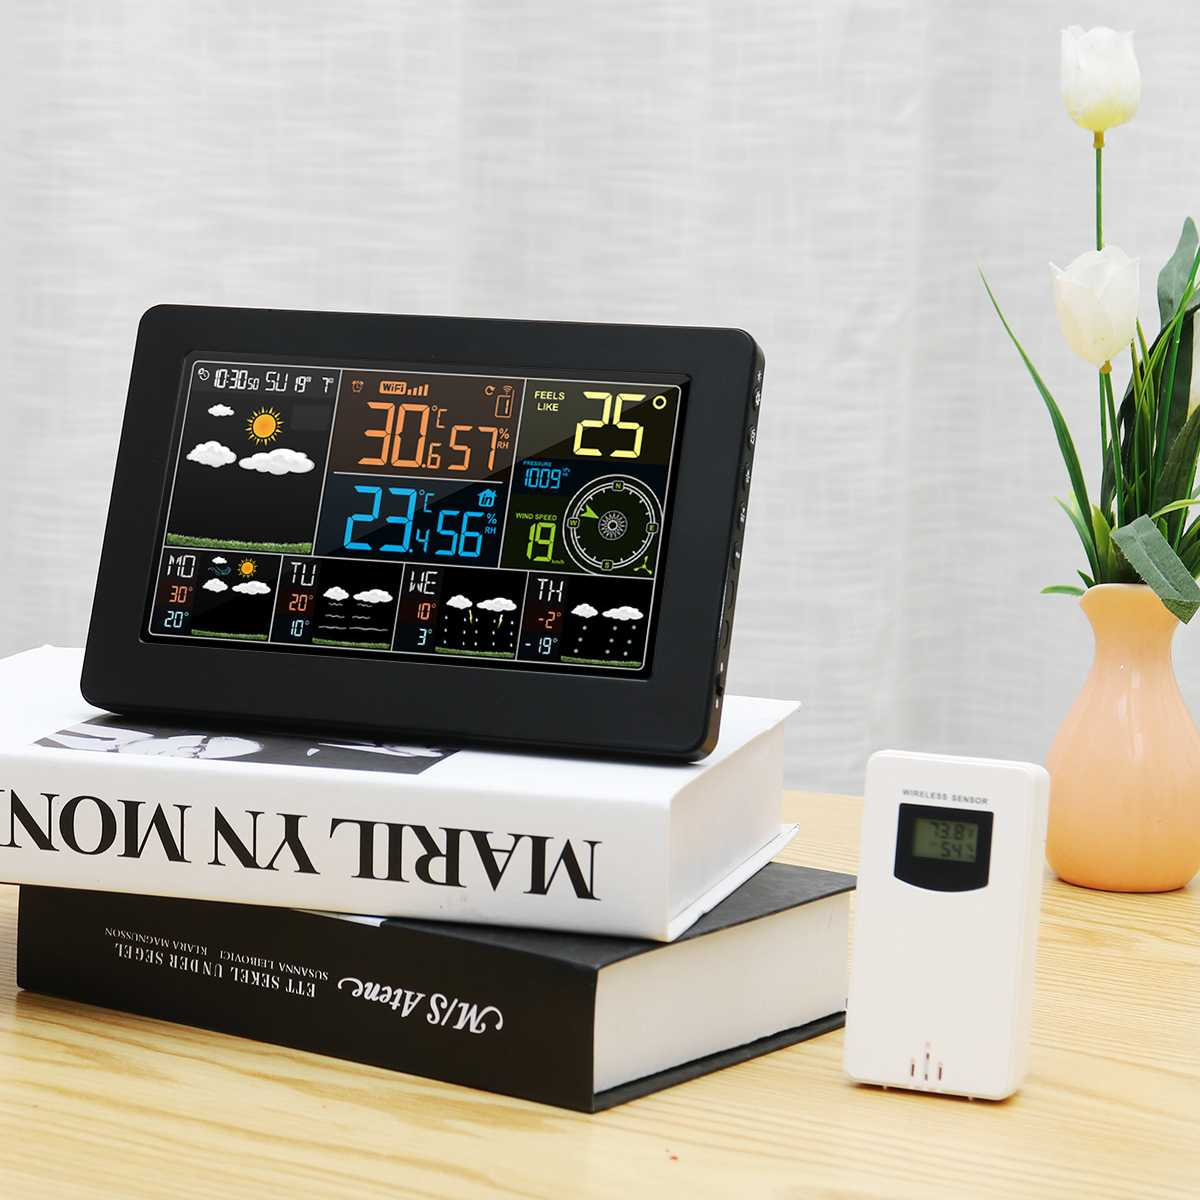 LED Wifi App Weather Station Thermometer Barometer Alarm Clock Wireless Sensor 4 Levels Backlight Wind Frost Warning Function image